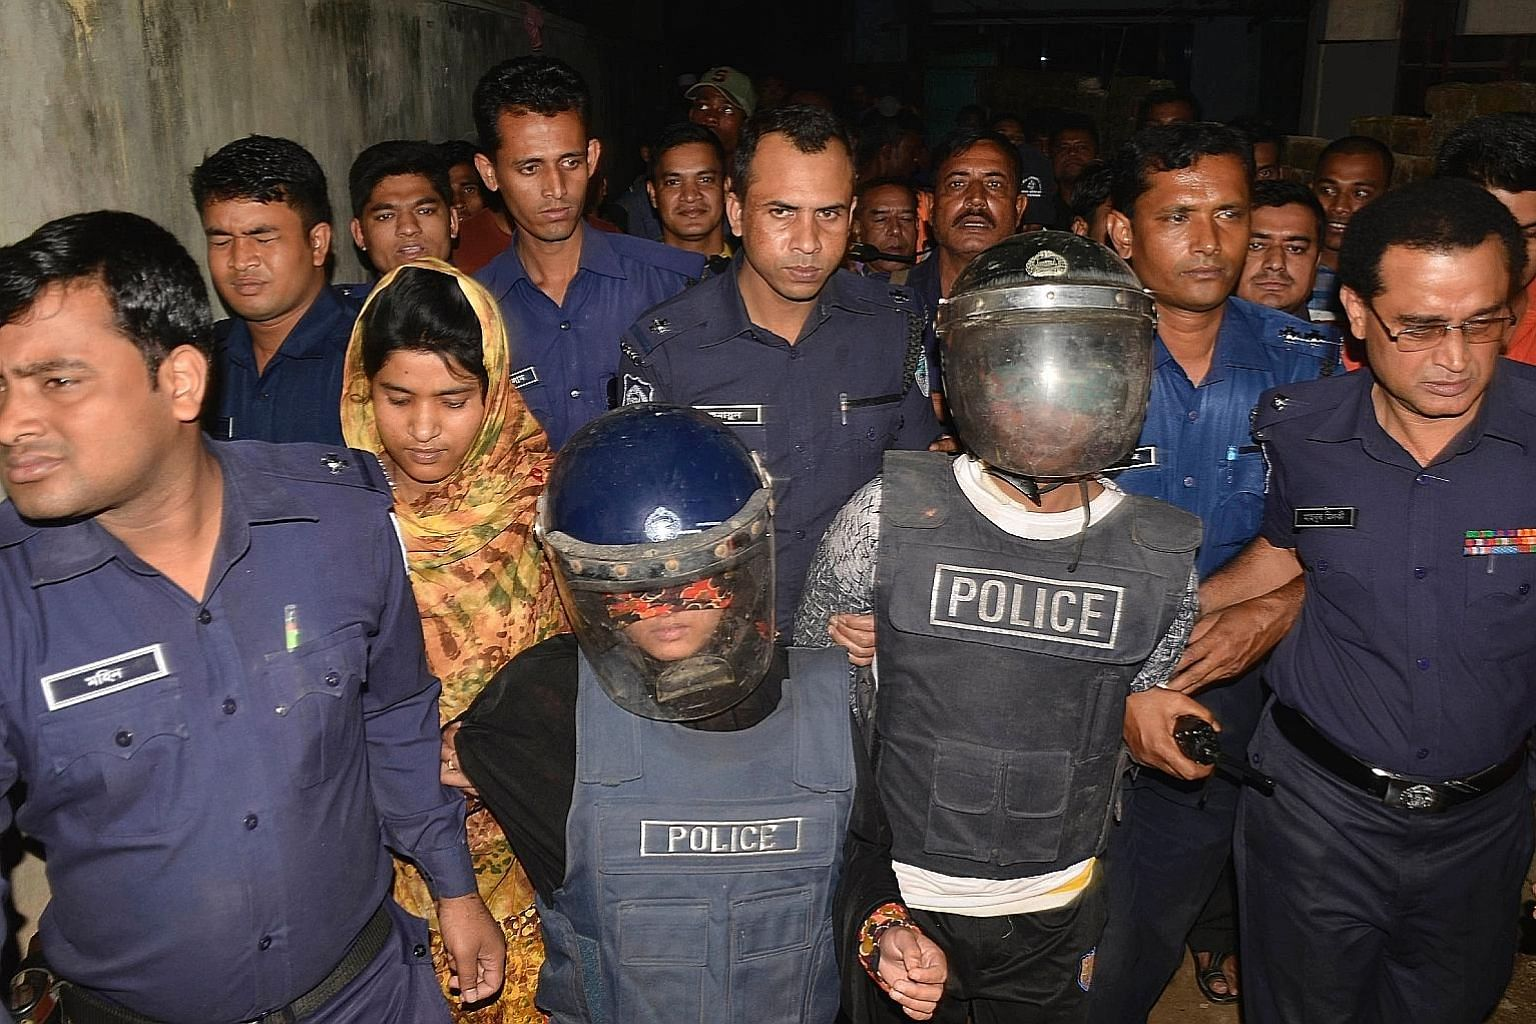 Bangladesh police detaining a couple for suspected terror links yesterday. Four militants from the New JMB group were killed in a shootout during an earlier police raid.